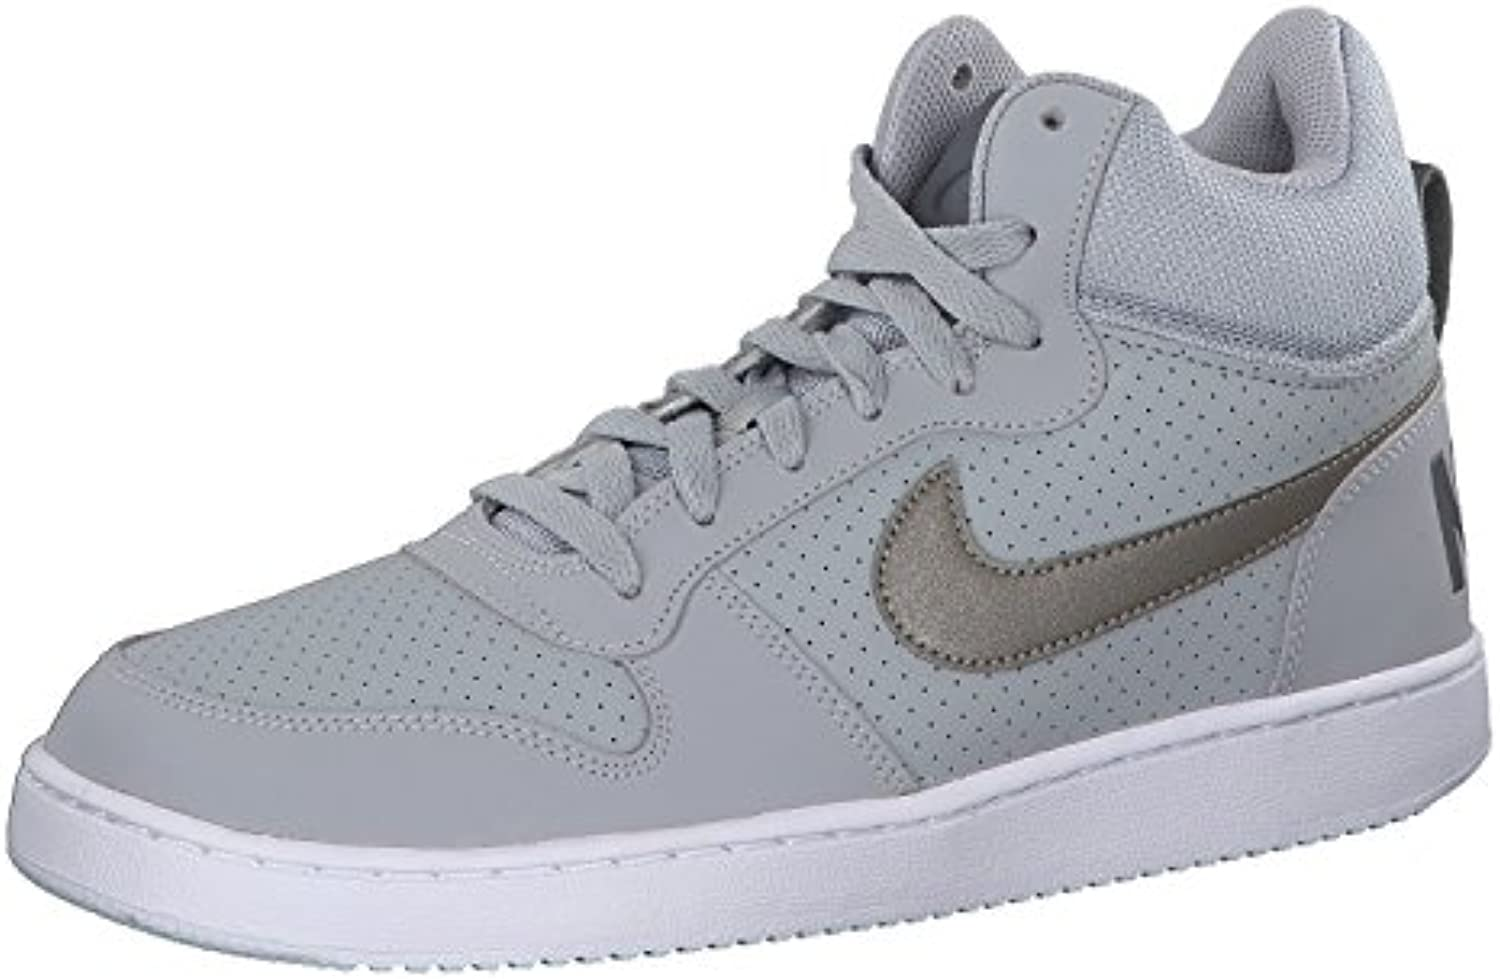 Nikee Court Borough Mid Sneaker Trainer